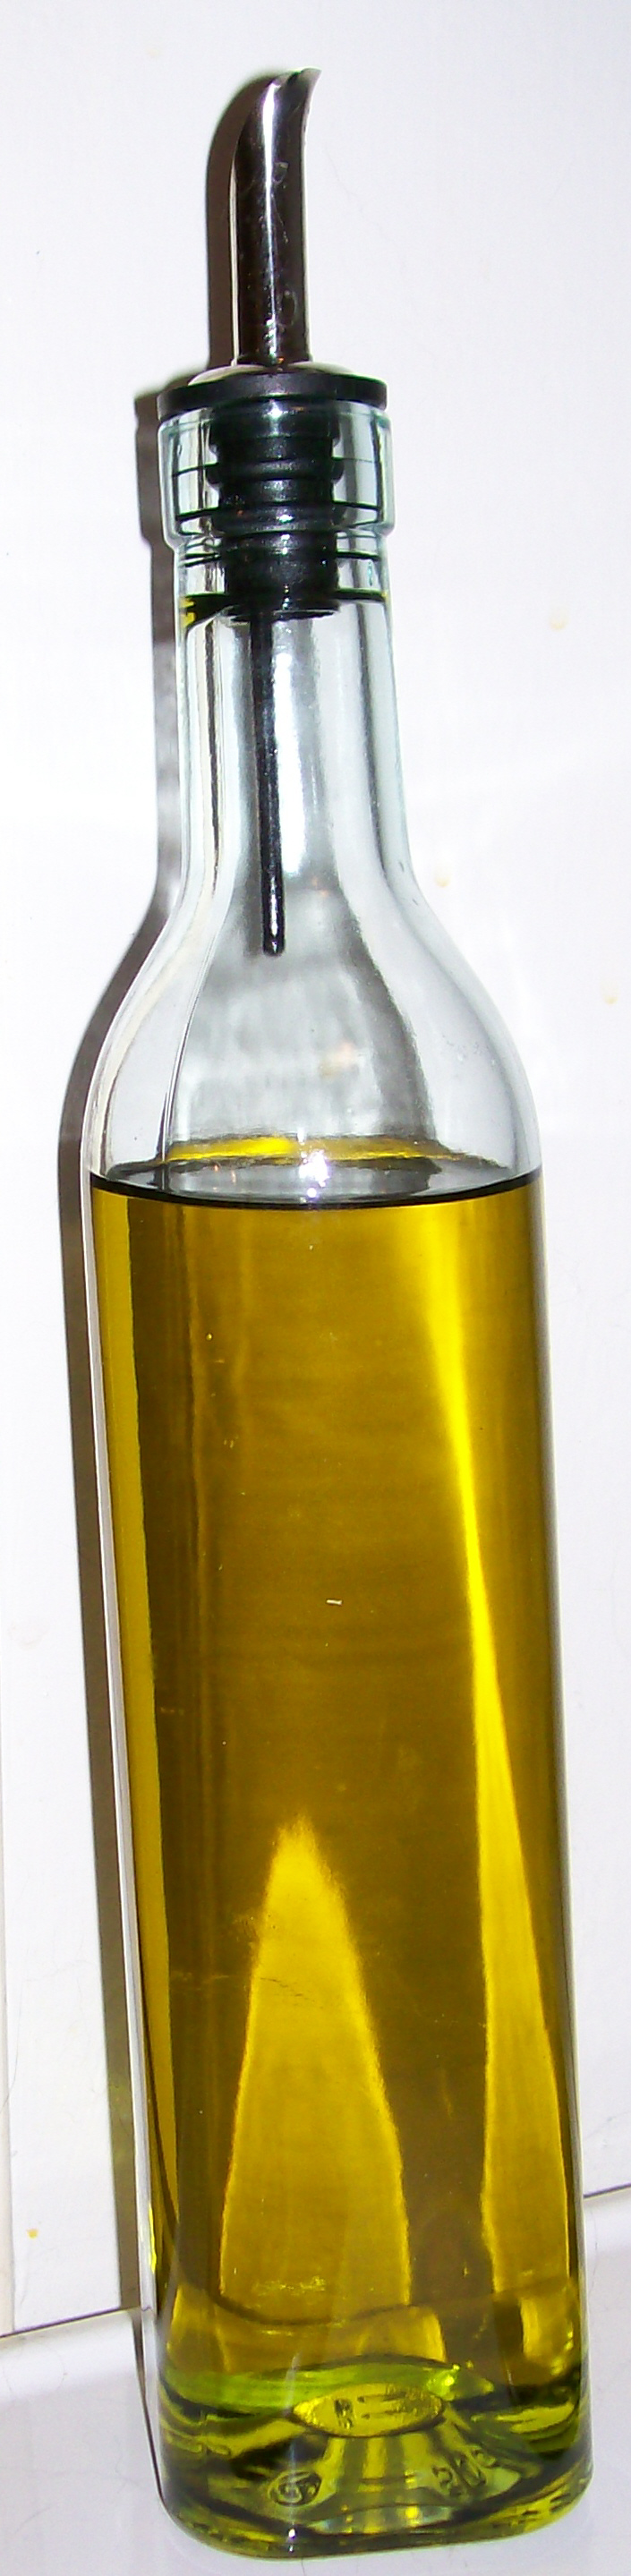 Olive oil bottle by MysticrainbowStock